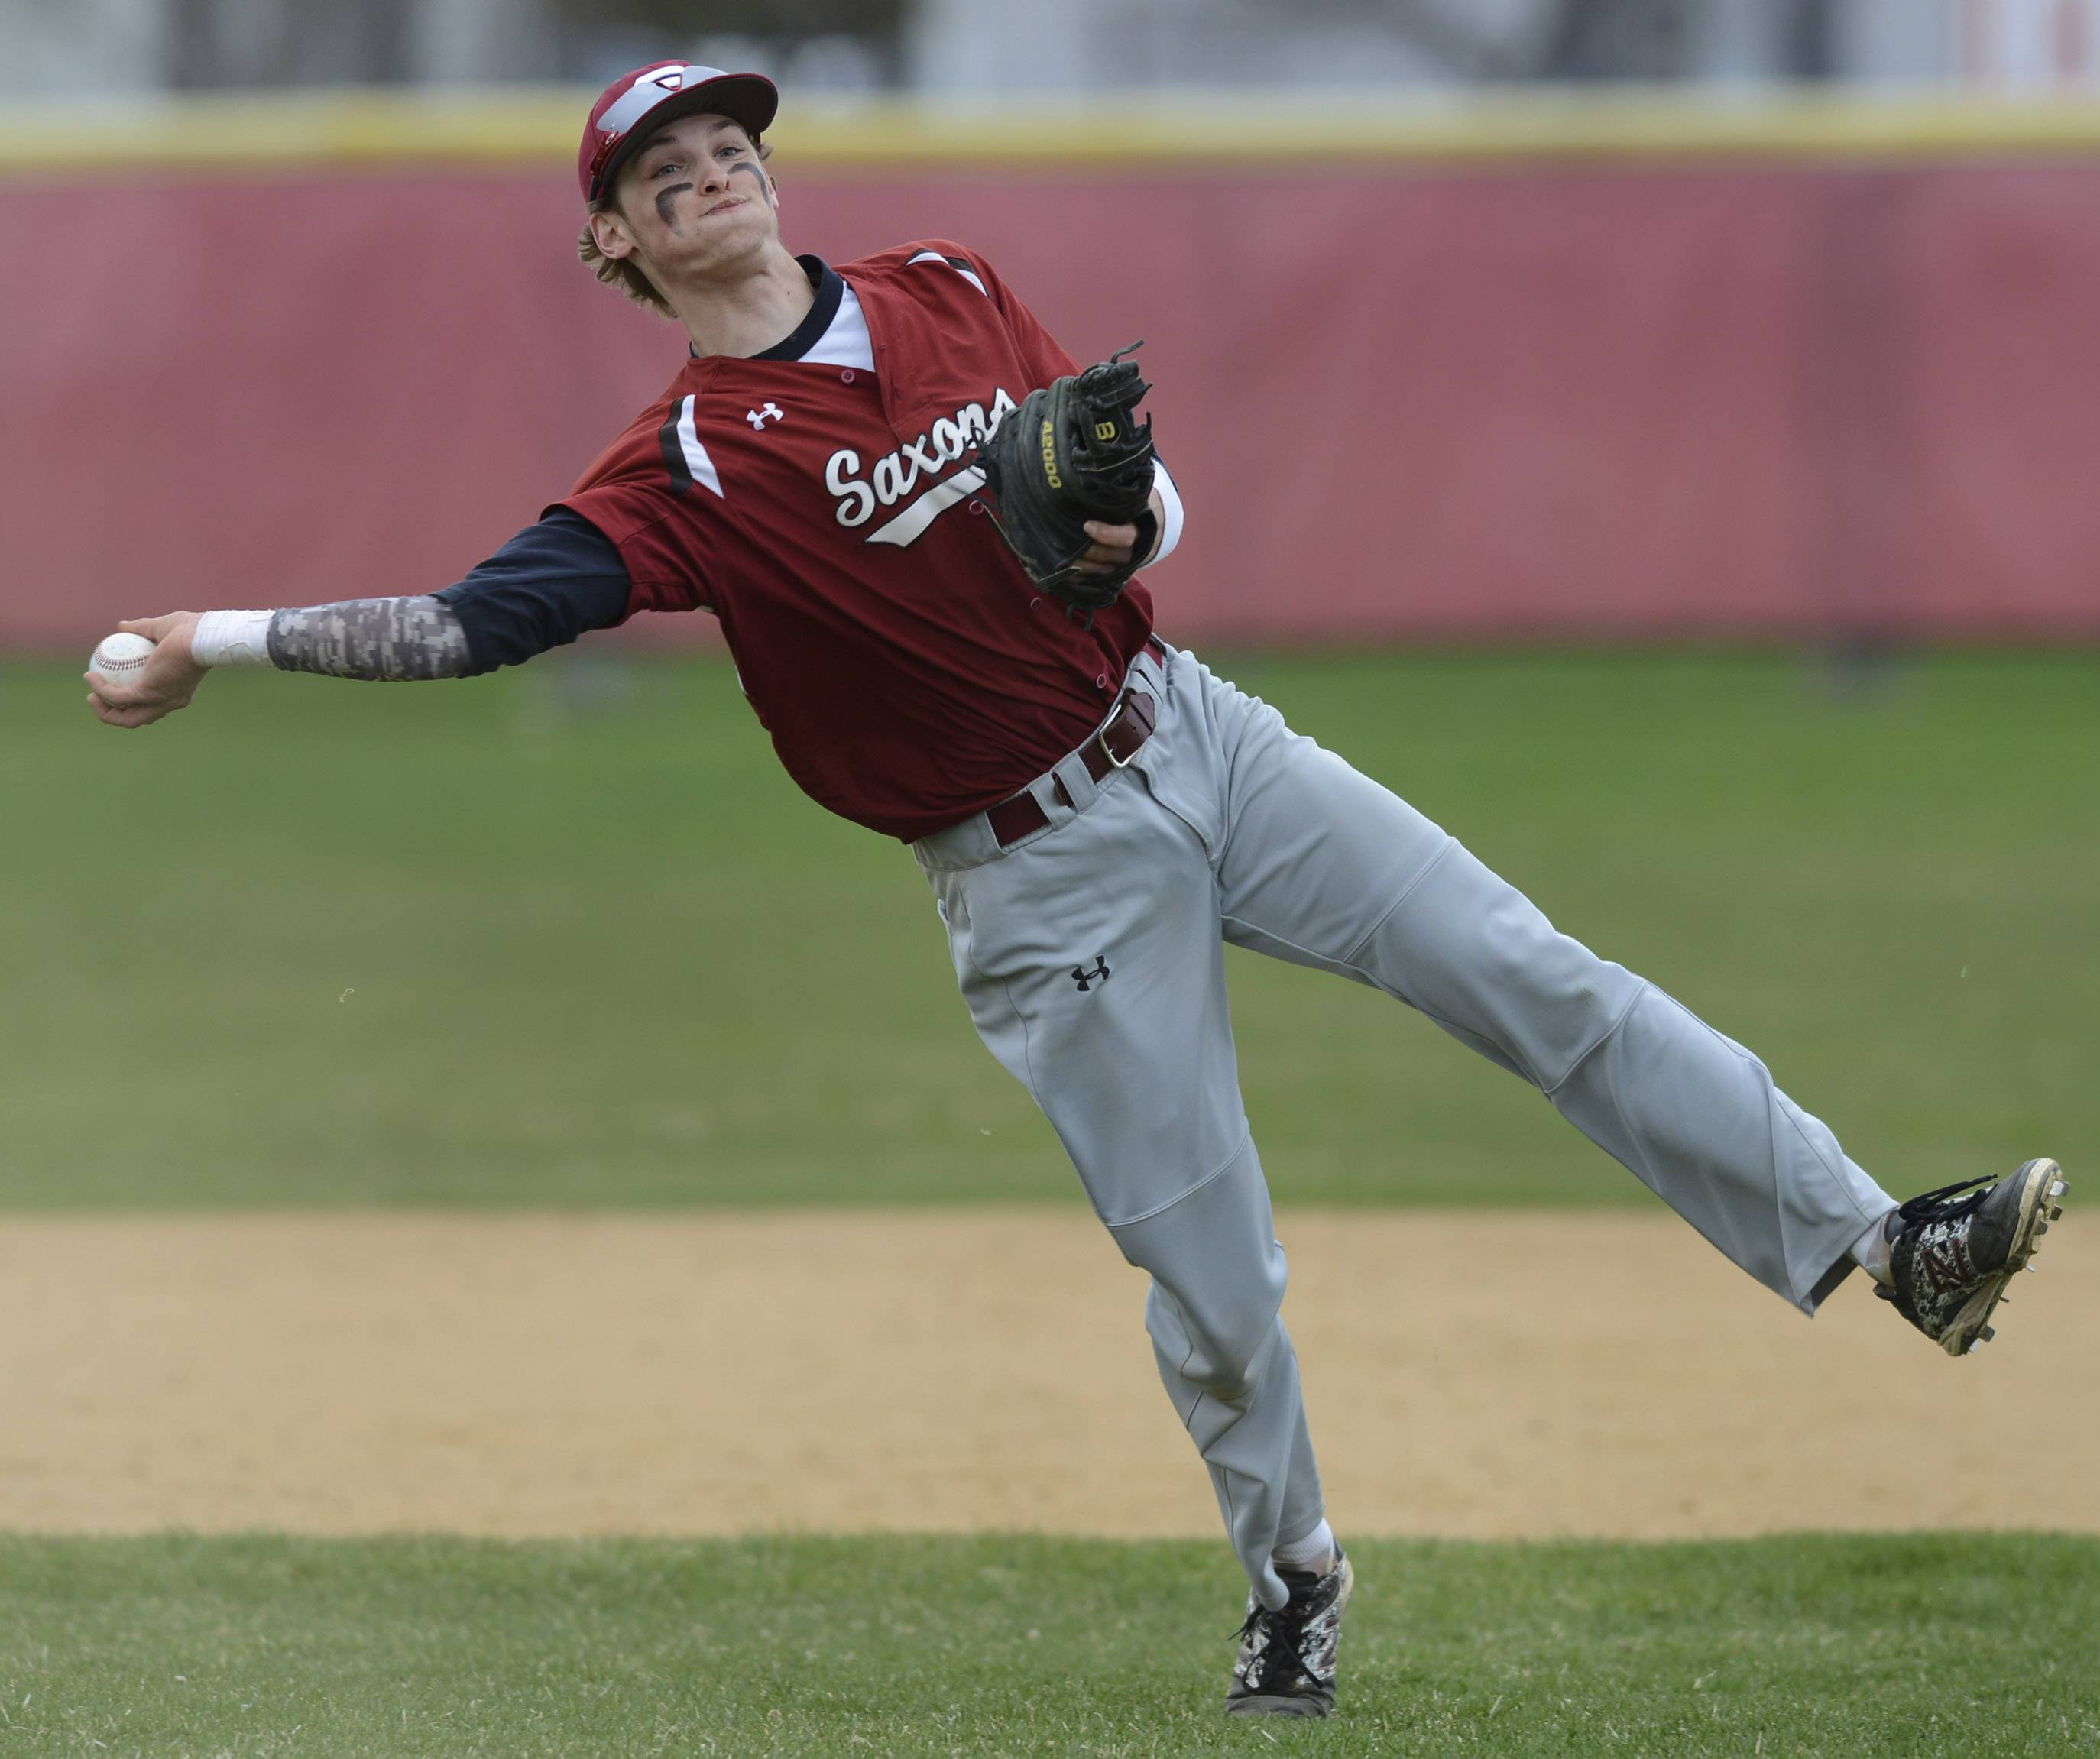 Schaumburg's Joe Franz hustles to make a throw after picking up a slow roller, just missing the Conant runner at first.